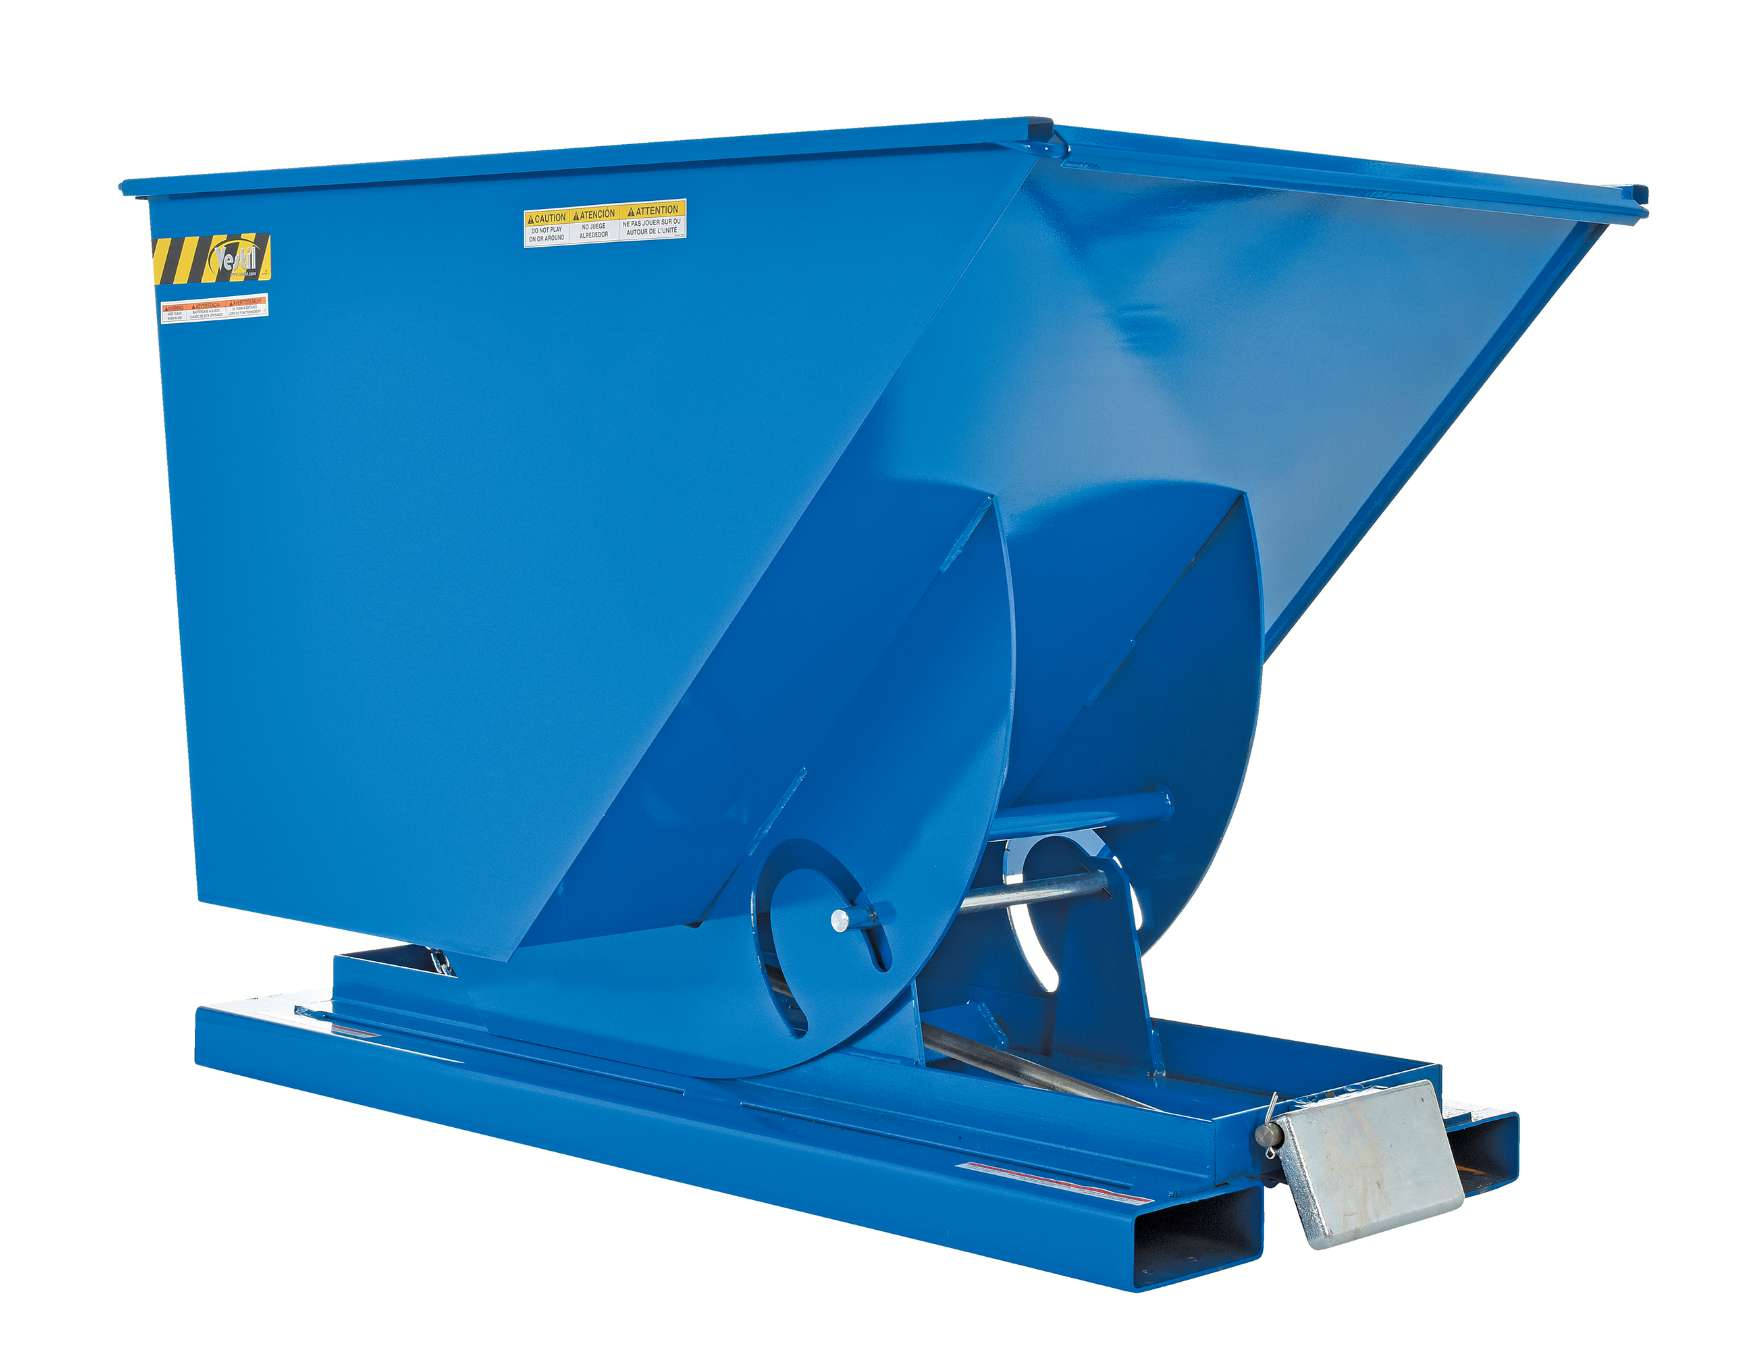 Vestil 1 Yard Self-Dumping Steel Hopper With Bumper Release, Model D-100-LD